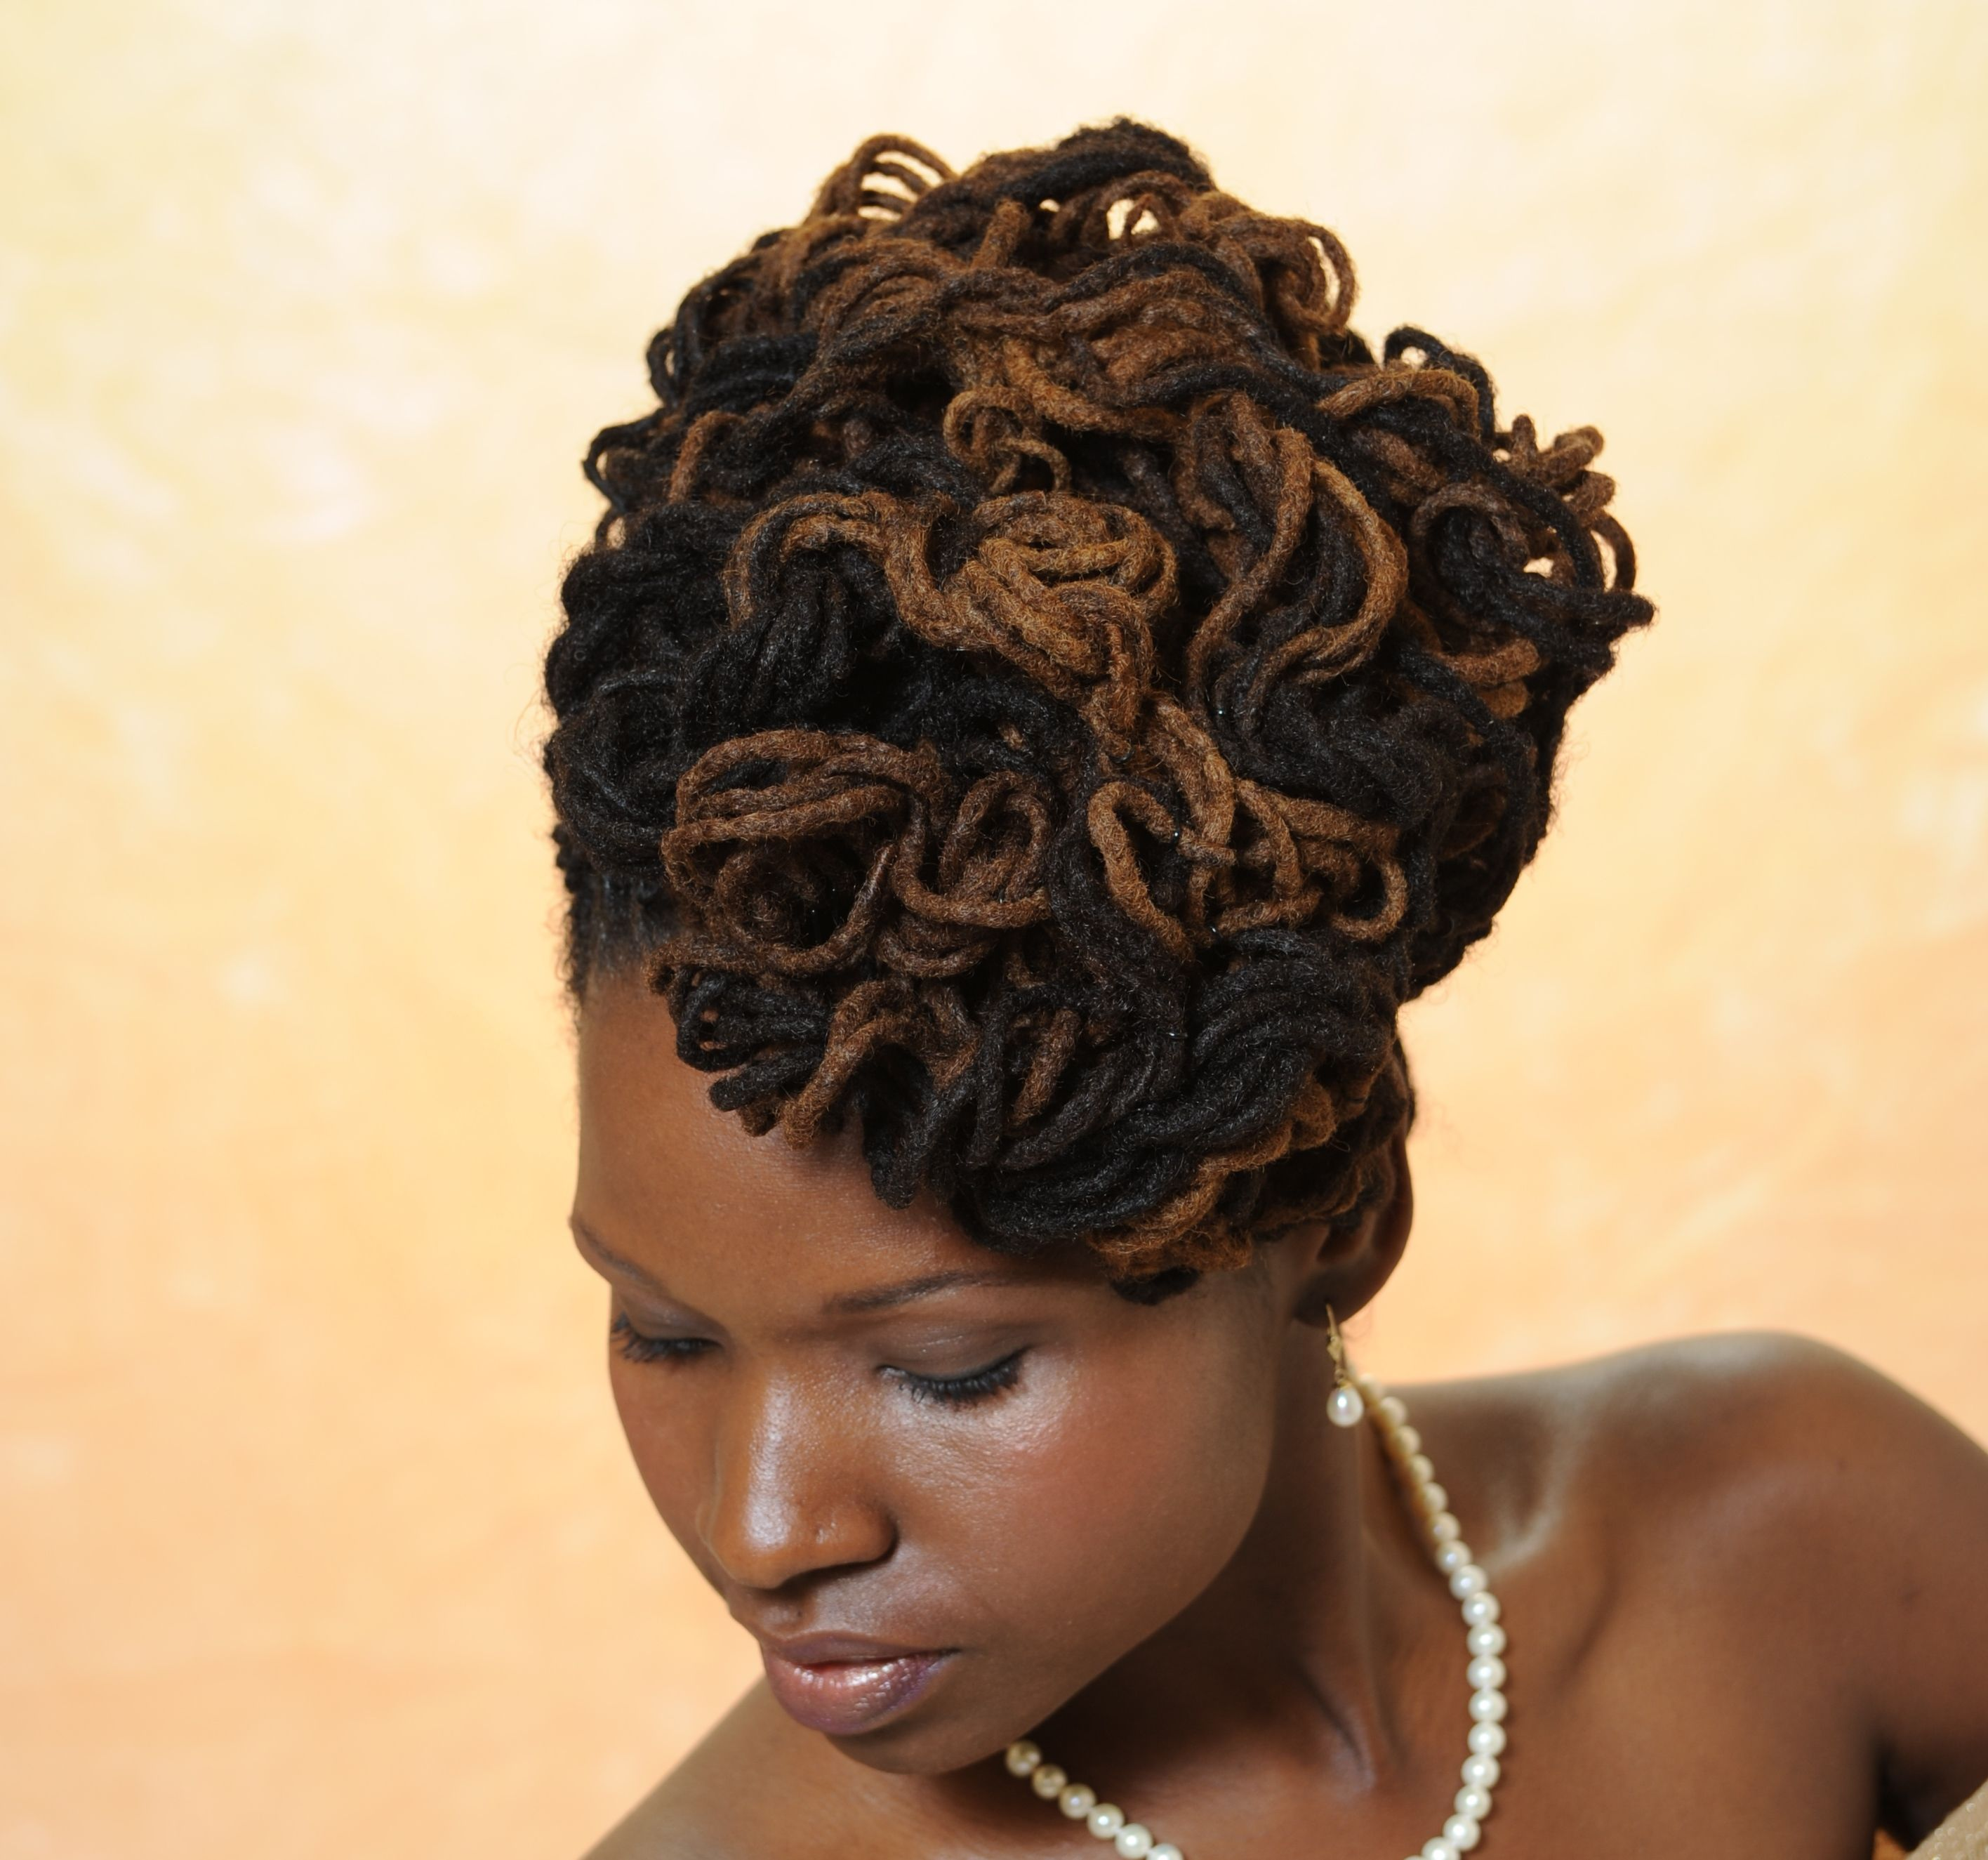 from urban natural styles | african american locked formal